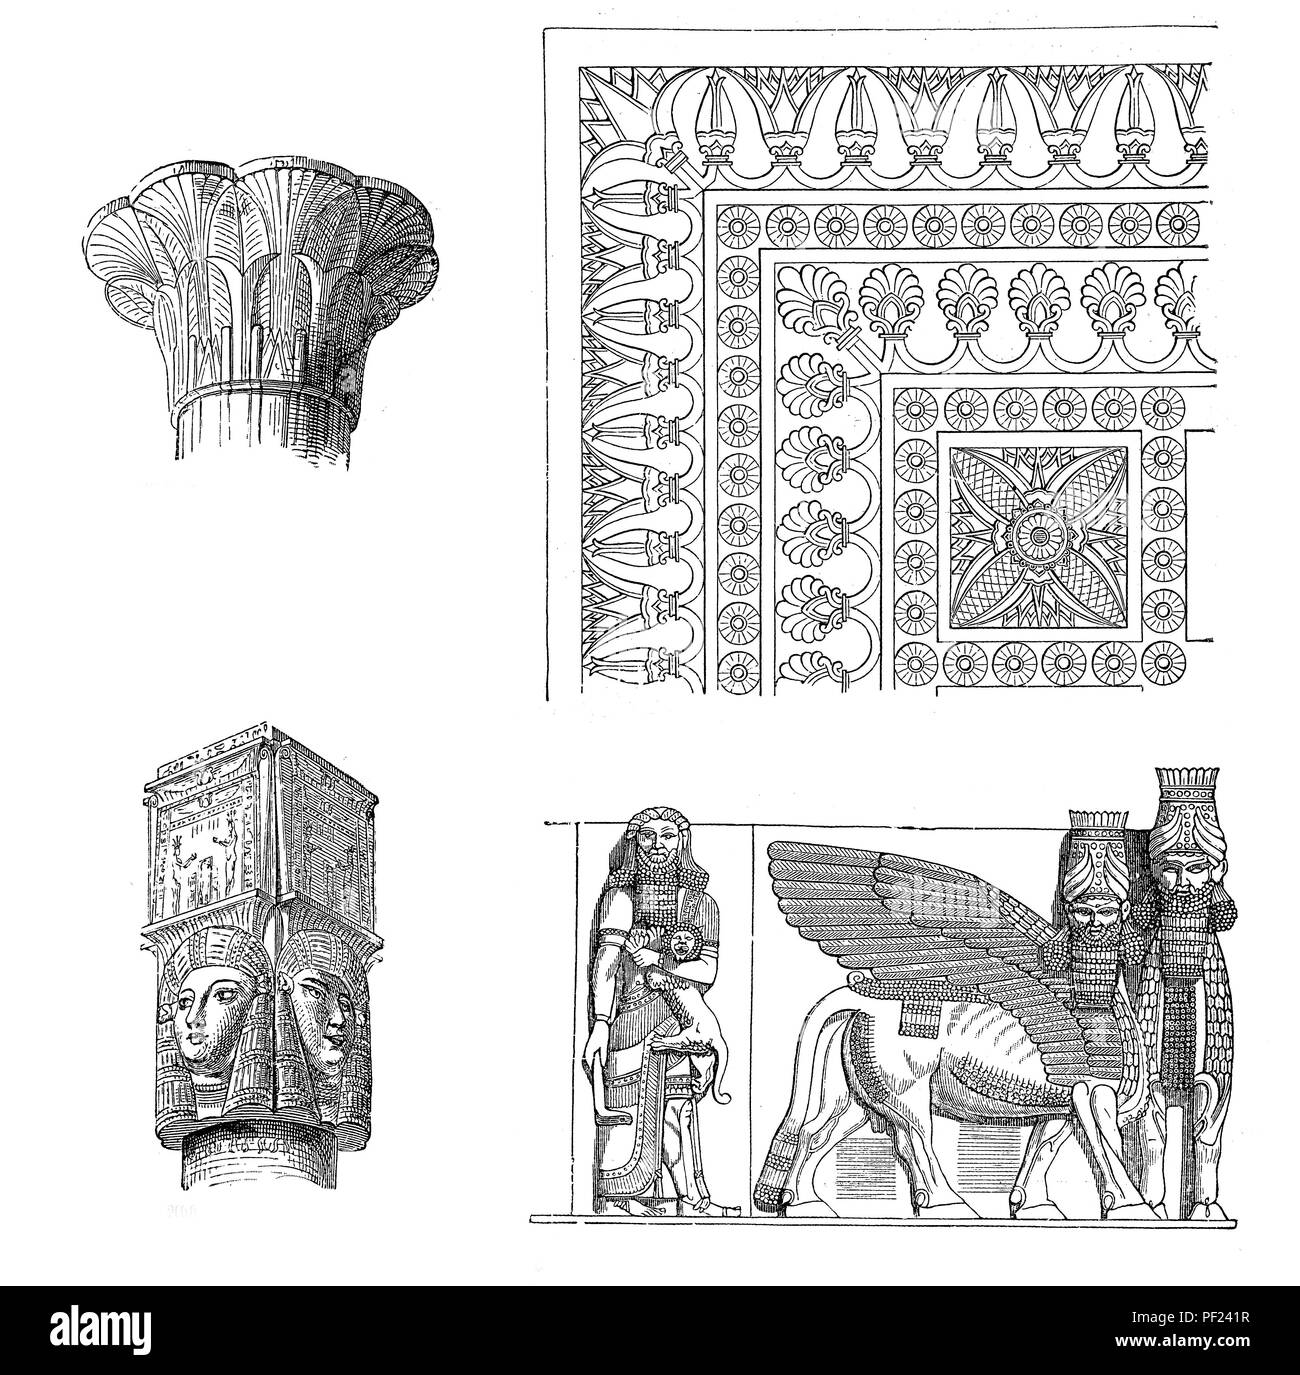 Ancient civilizations art and architecture: capital of Esna, capital of Dendera, floor ornament  and reliefs of the portal of Khorsabad - Stock Image